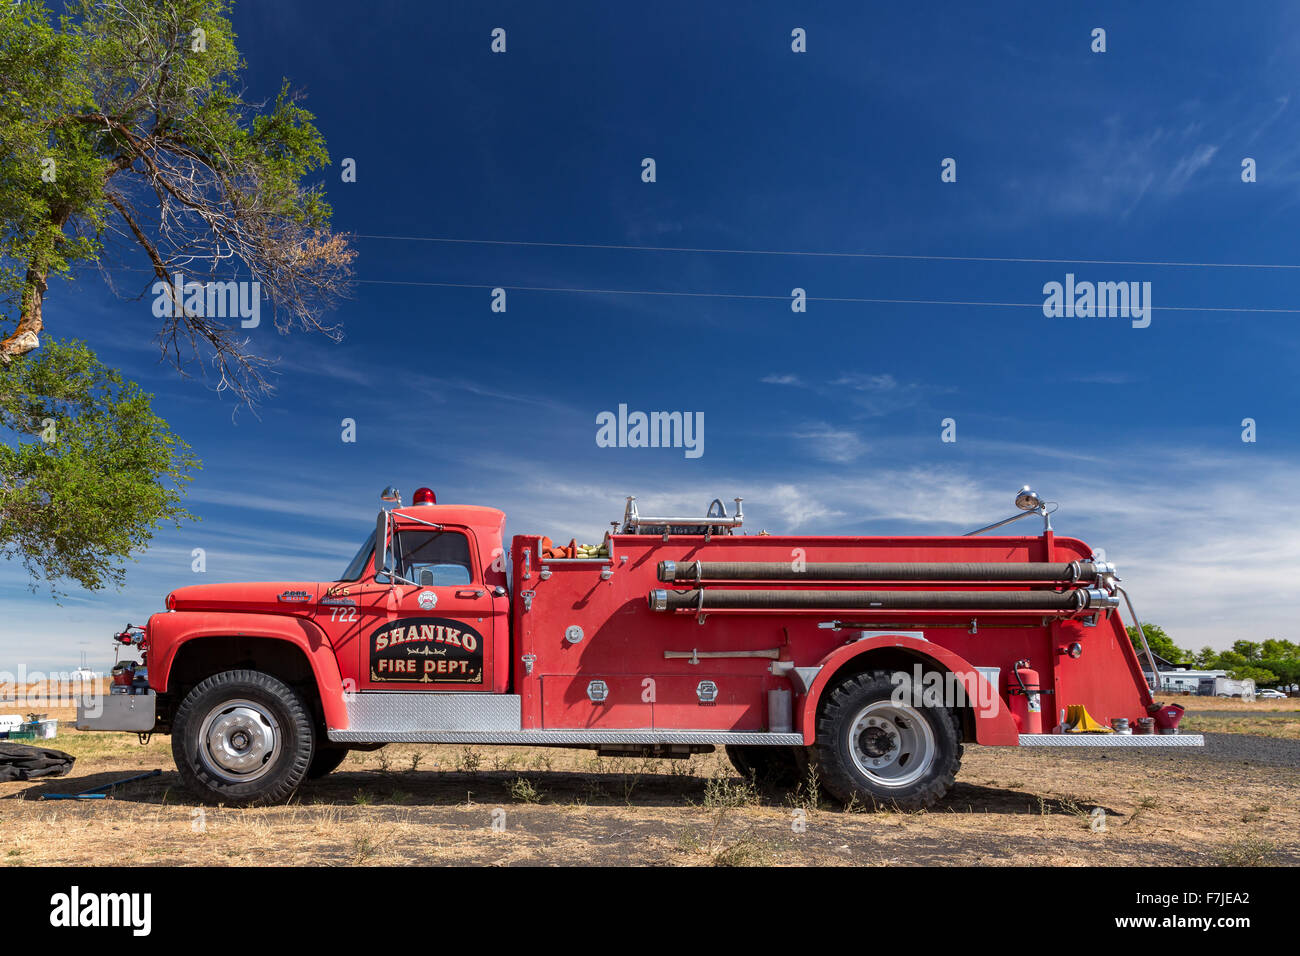 Shaniko Vintage Fire Truck, Shaniko, Wasco County, Oregon, United States    Stock